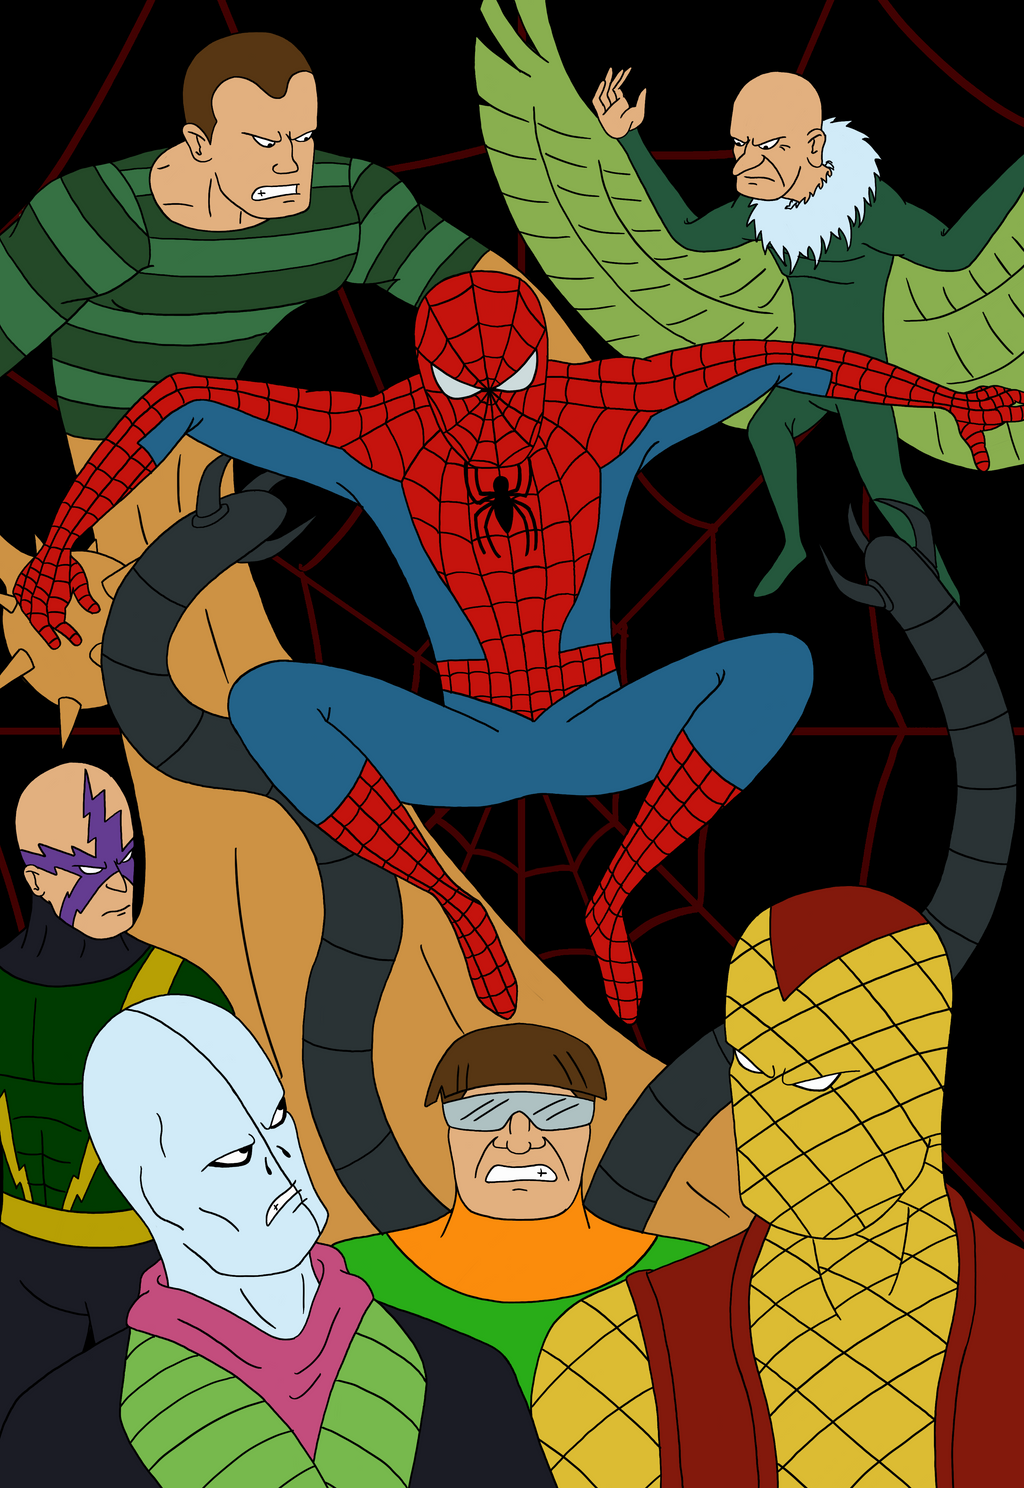 Spidey vs Sinister Six by MadMonkeyDane on DeviantArt